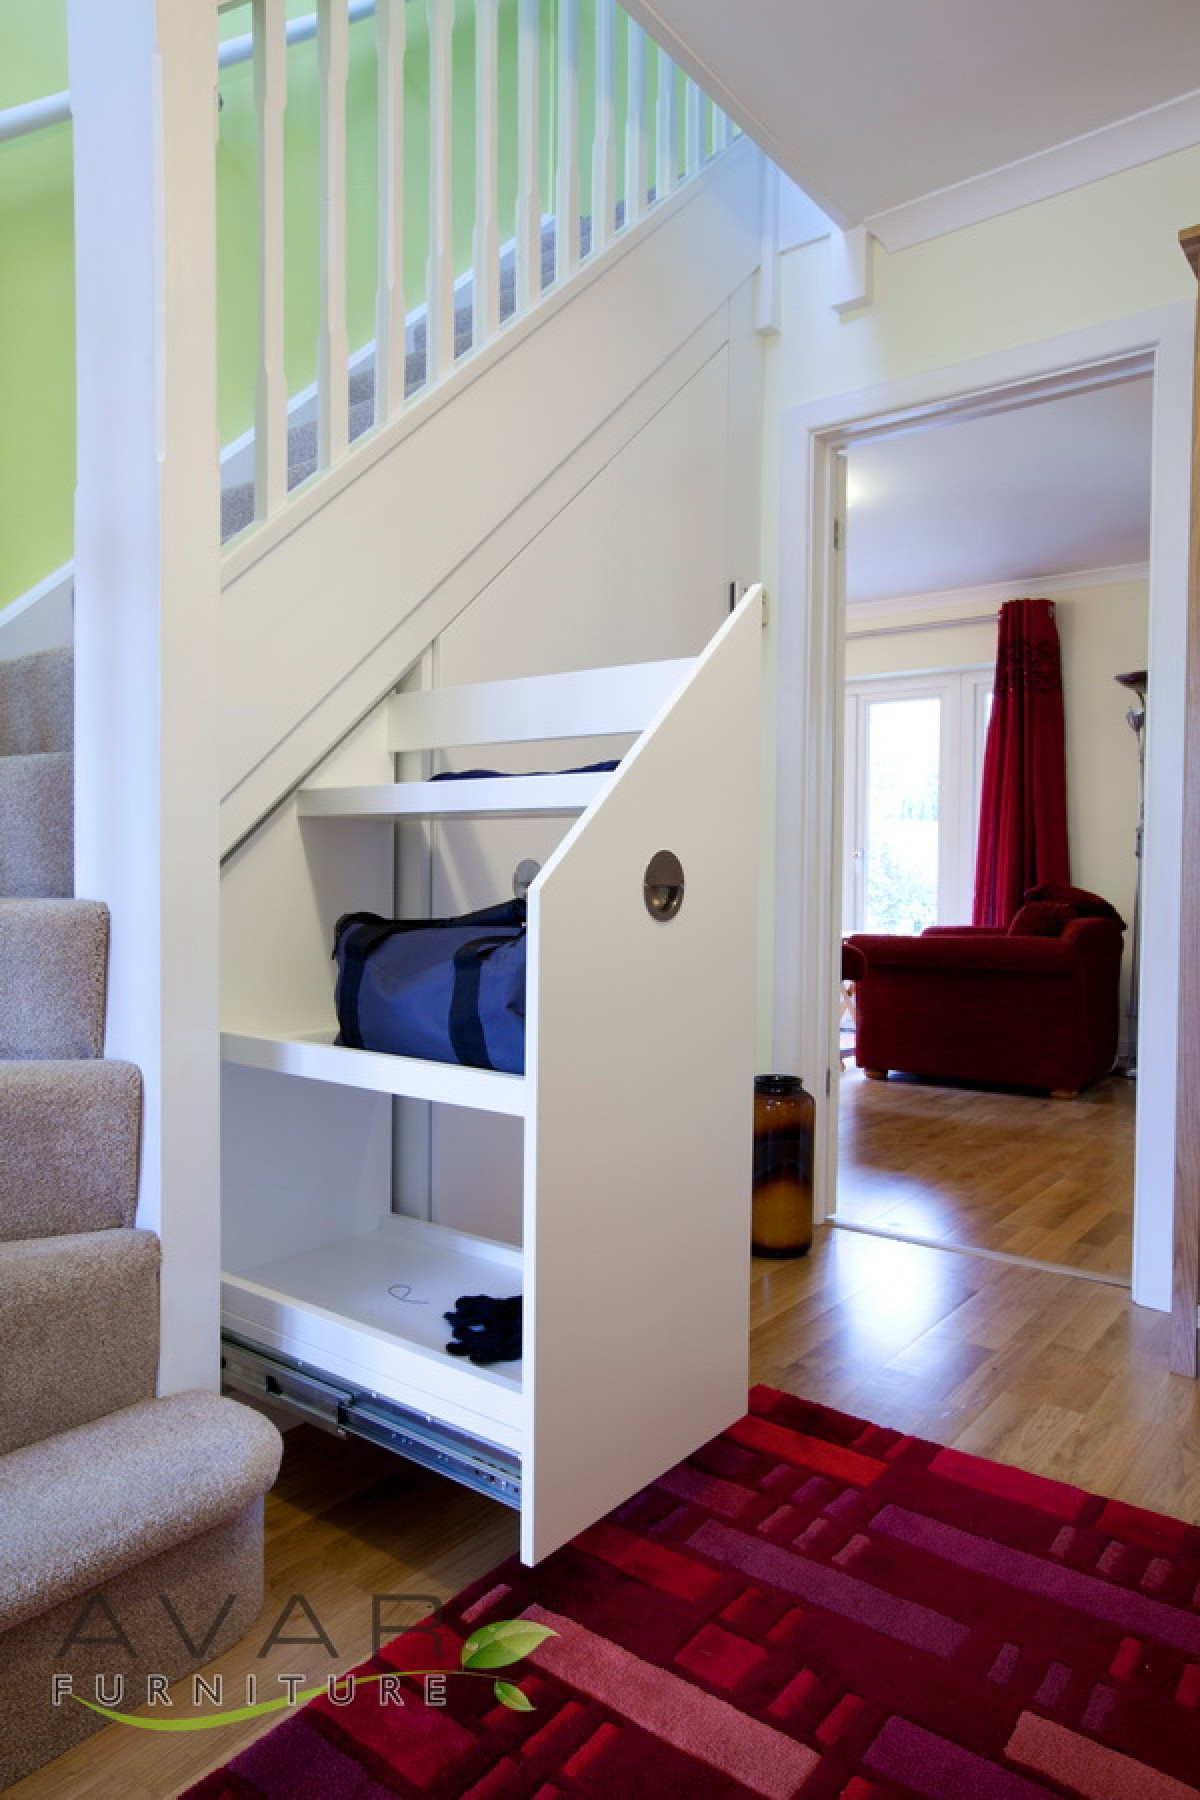 ƸӜƷ Under Stairs Storage Ideas Gallery 7 North London